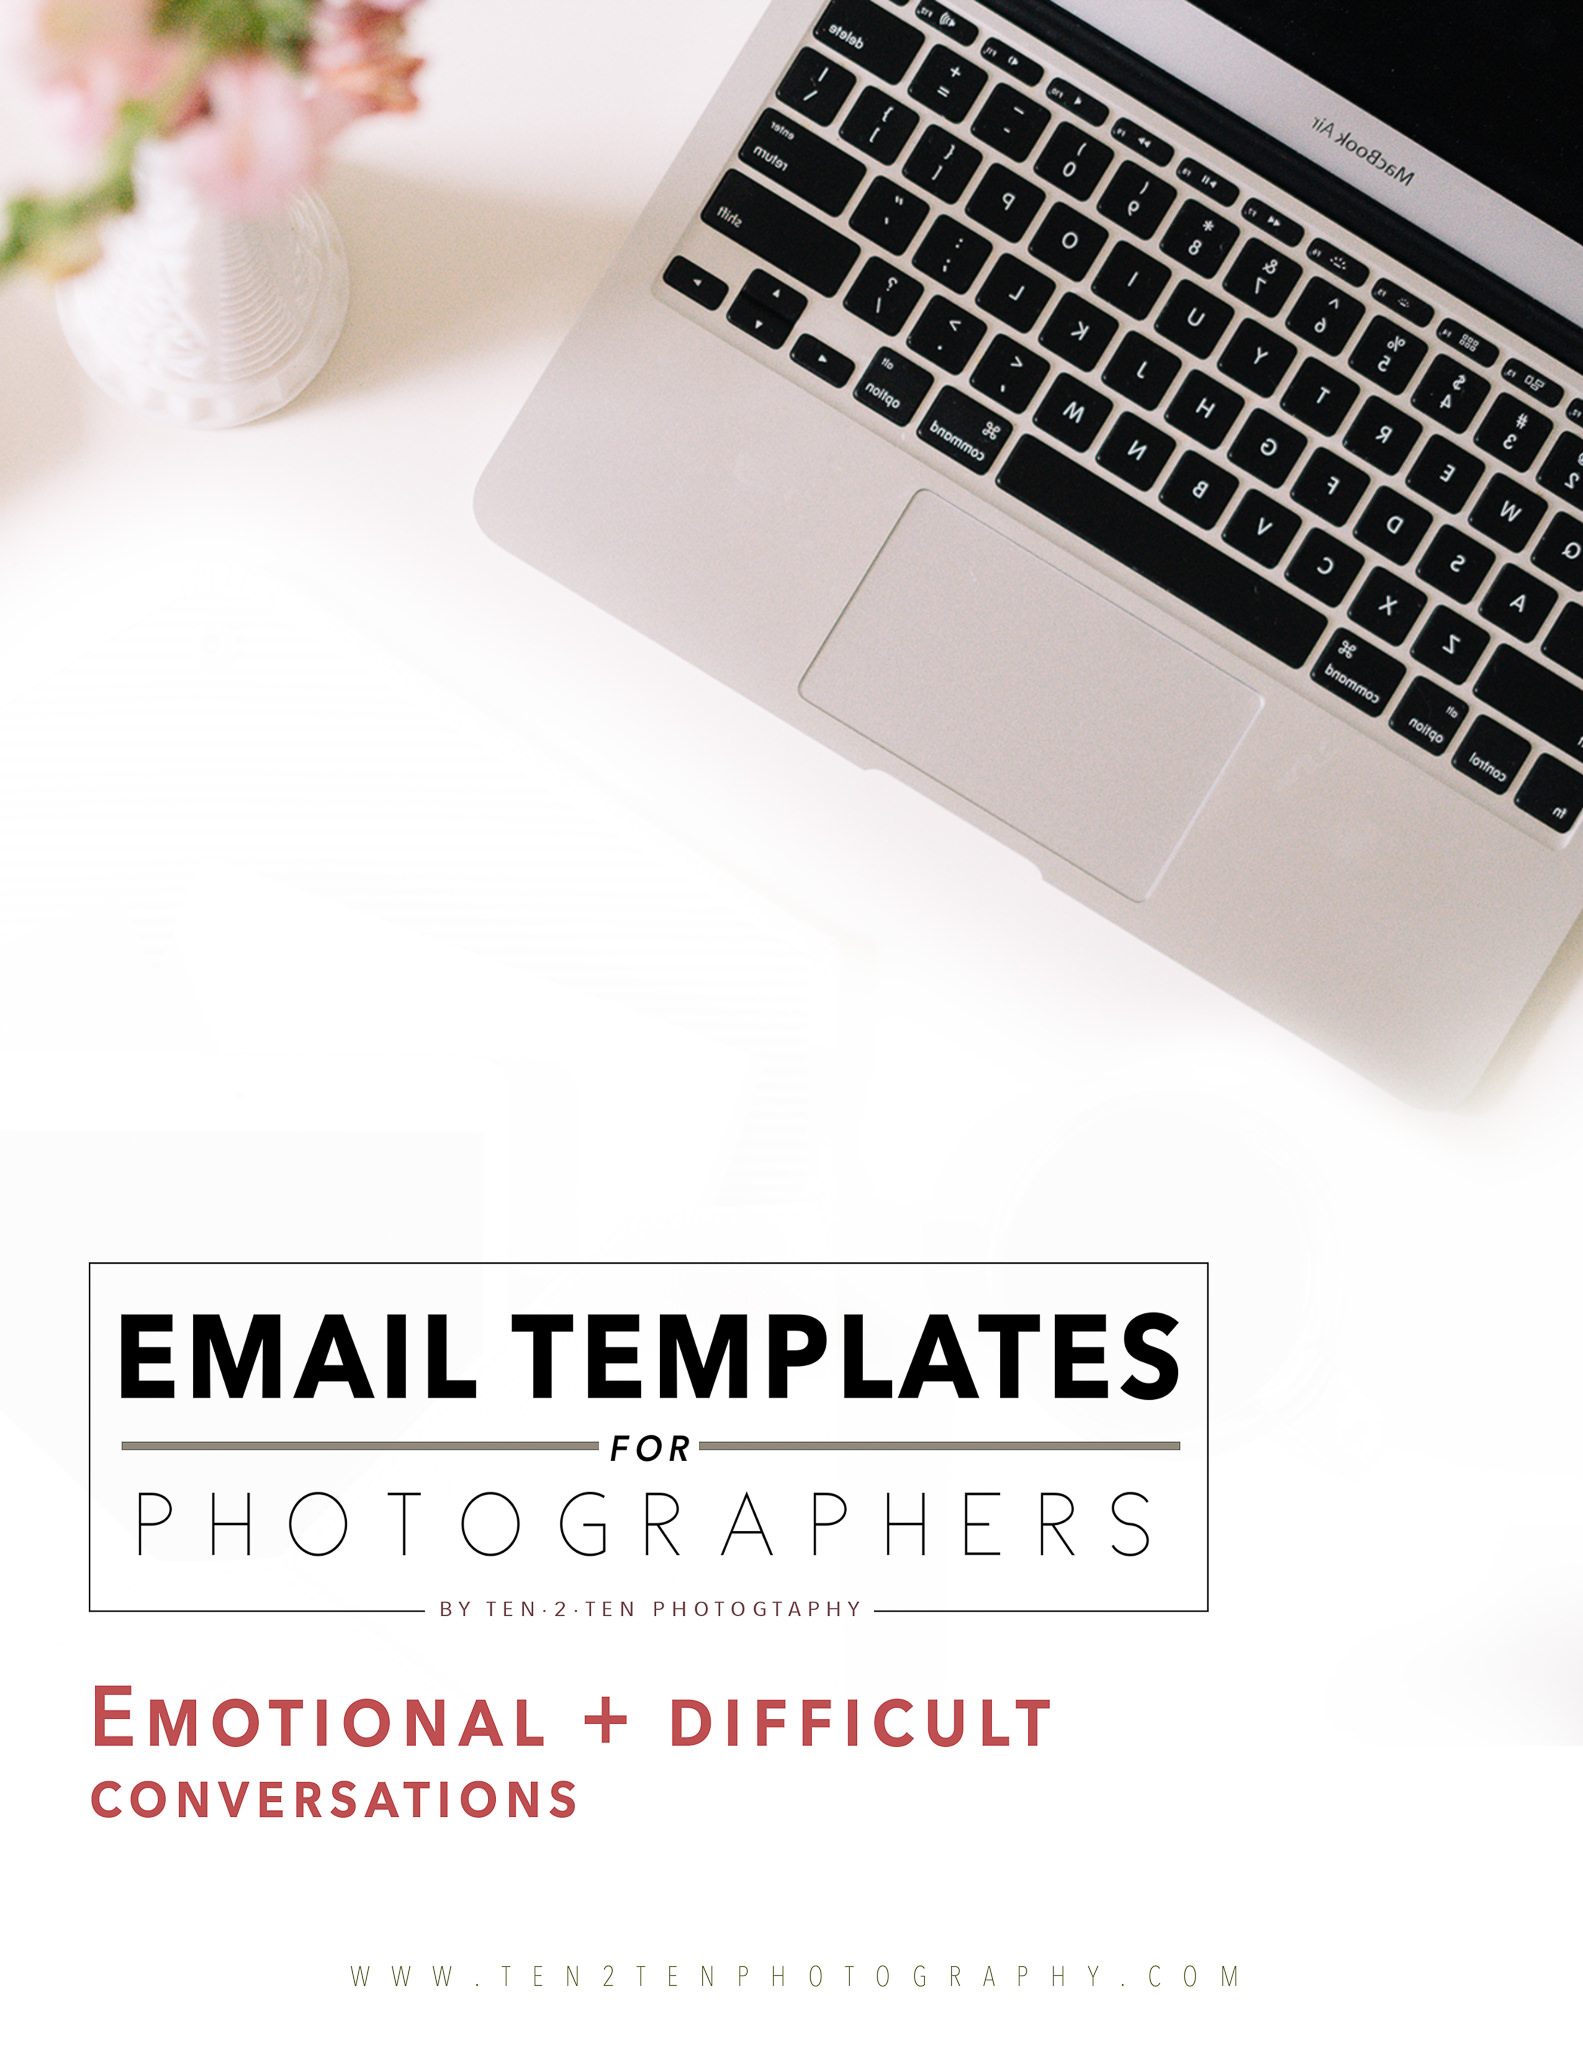 email templates for photographers 10 - Shop